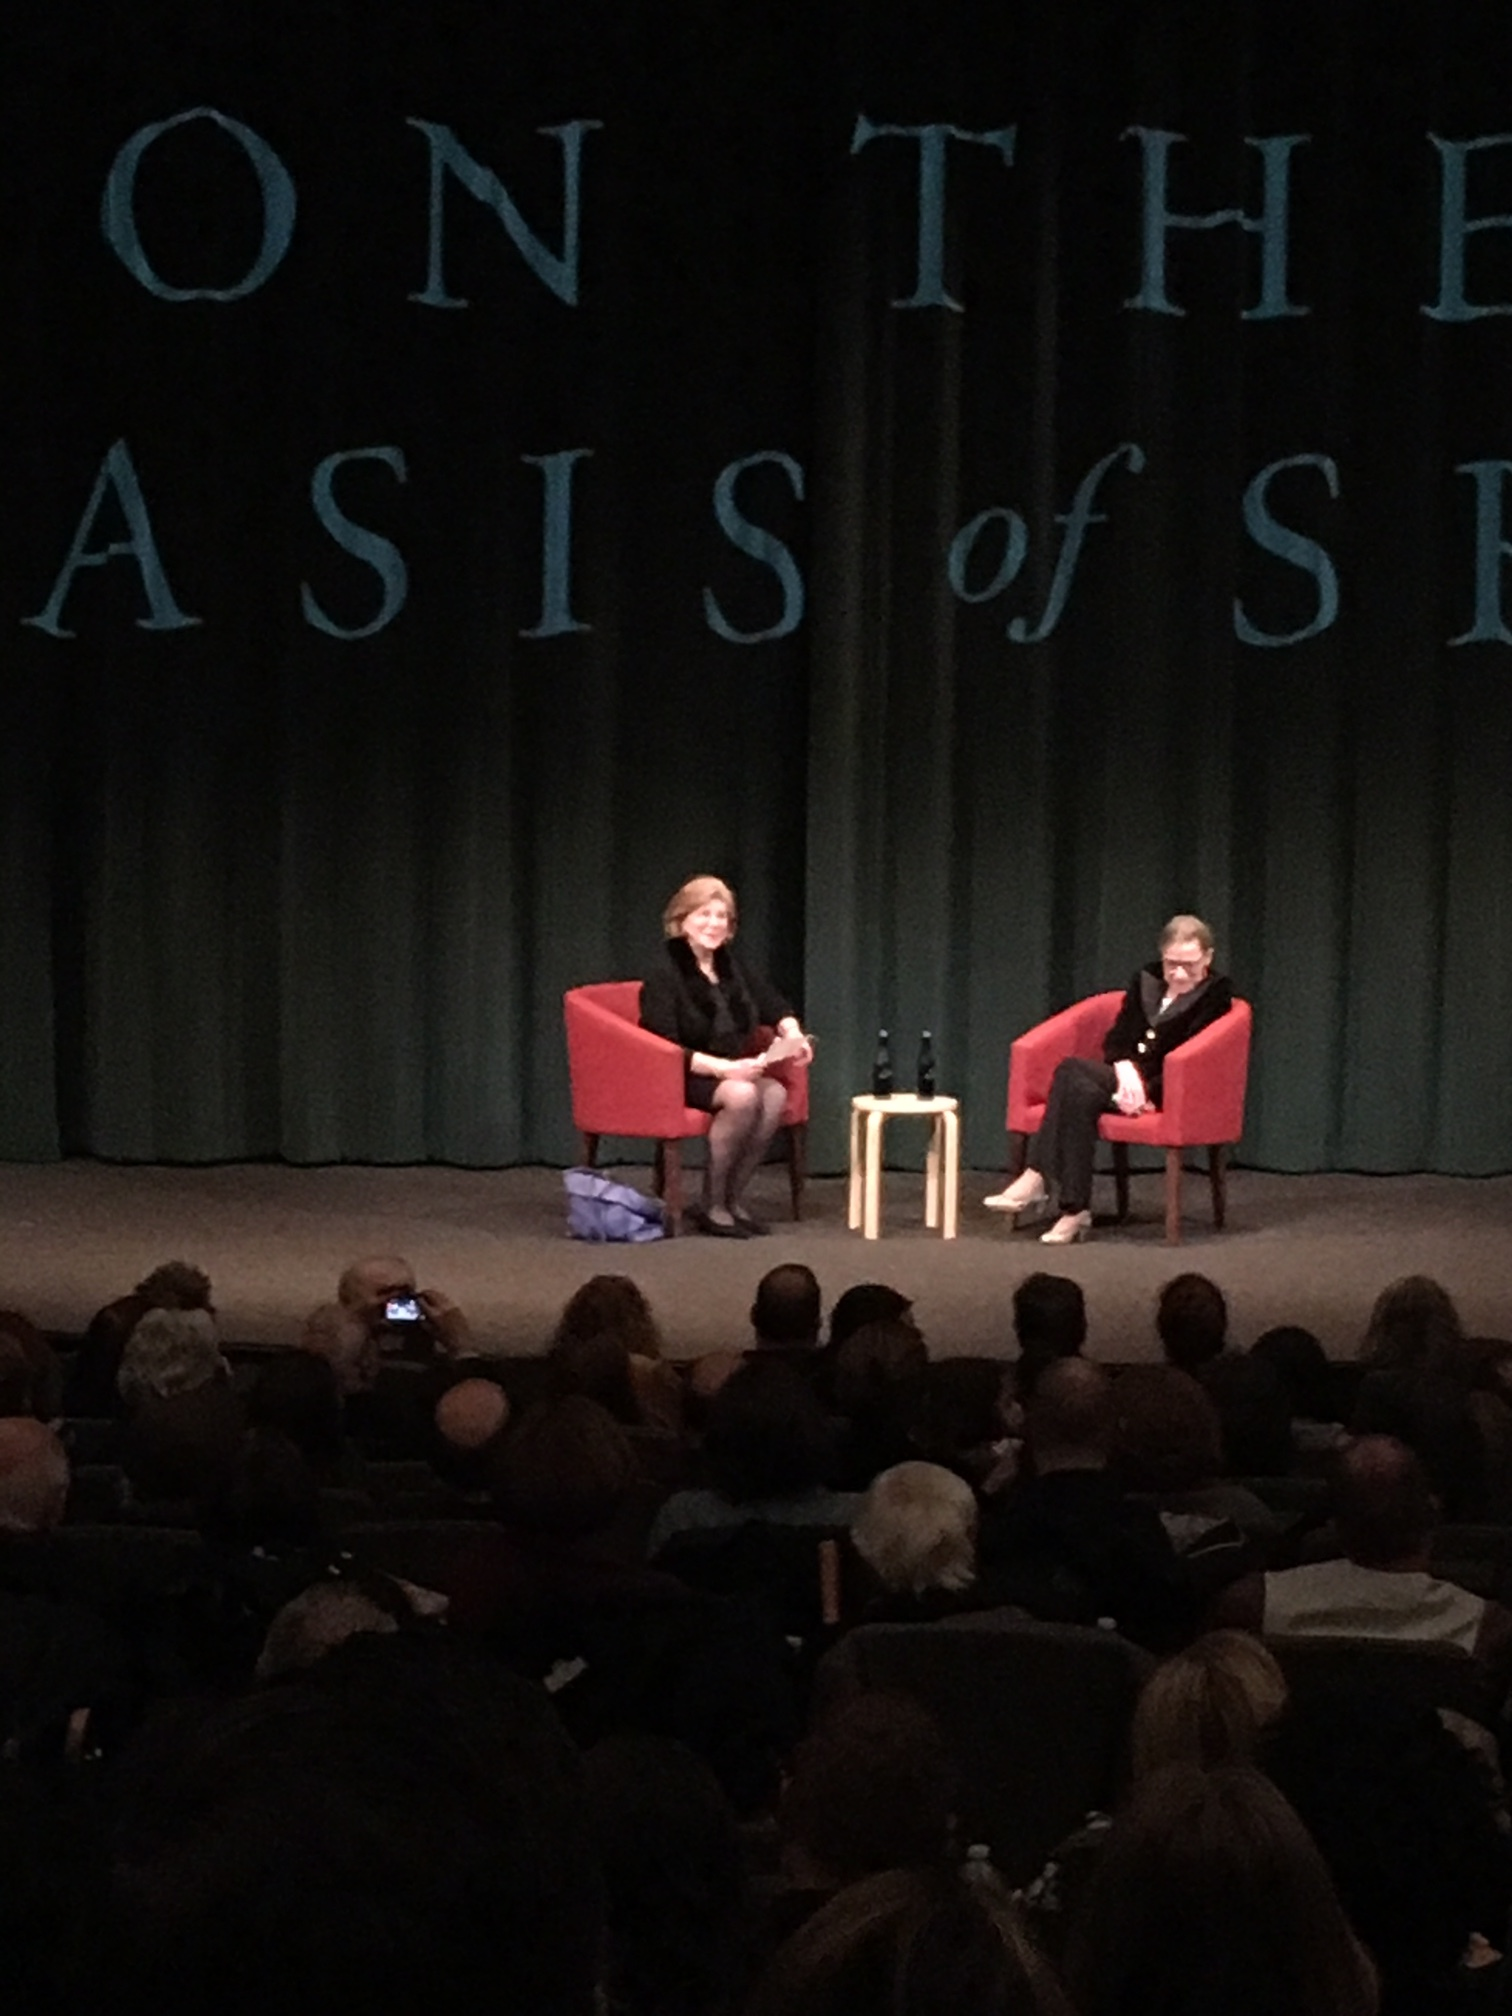 There she is, on the right. NPR's Nina Totenberg is on the left.